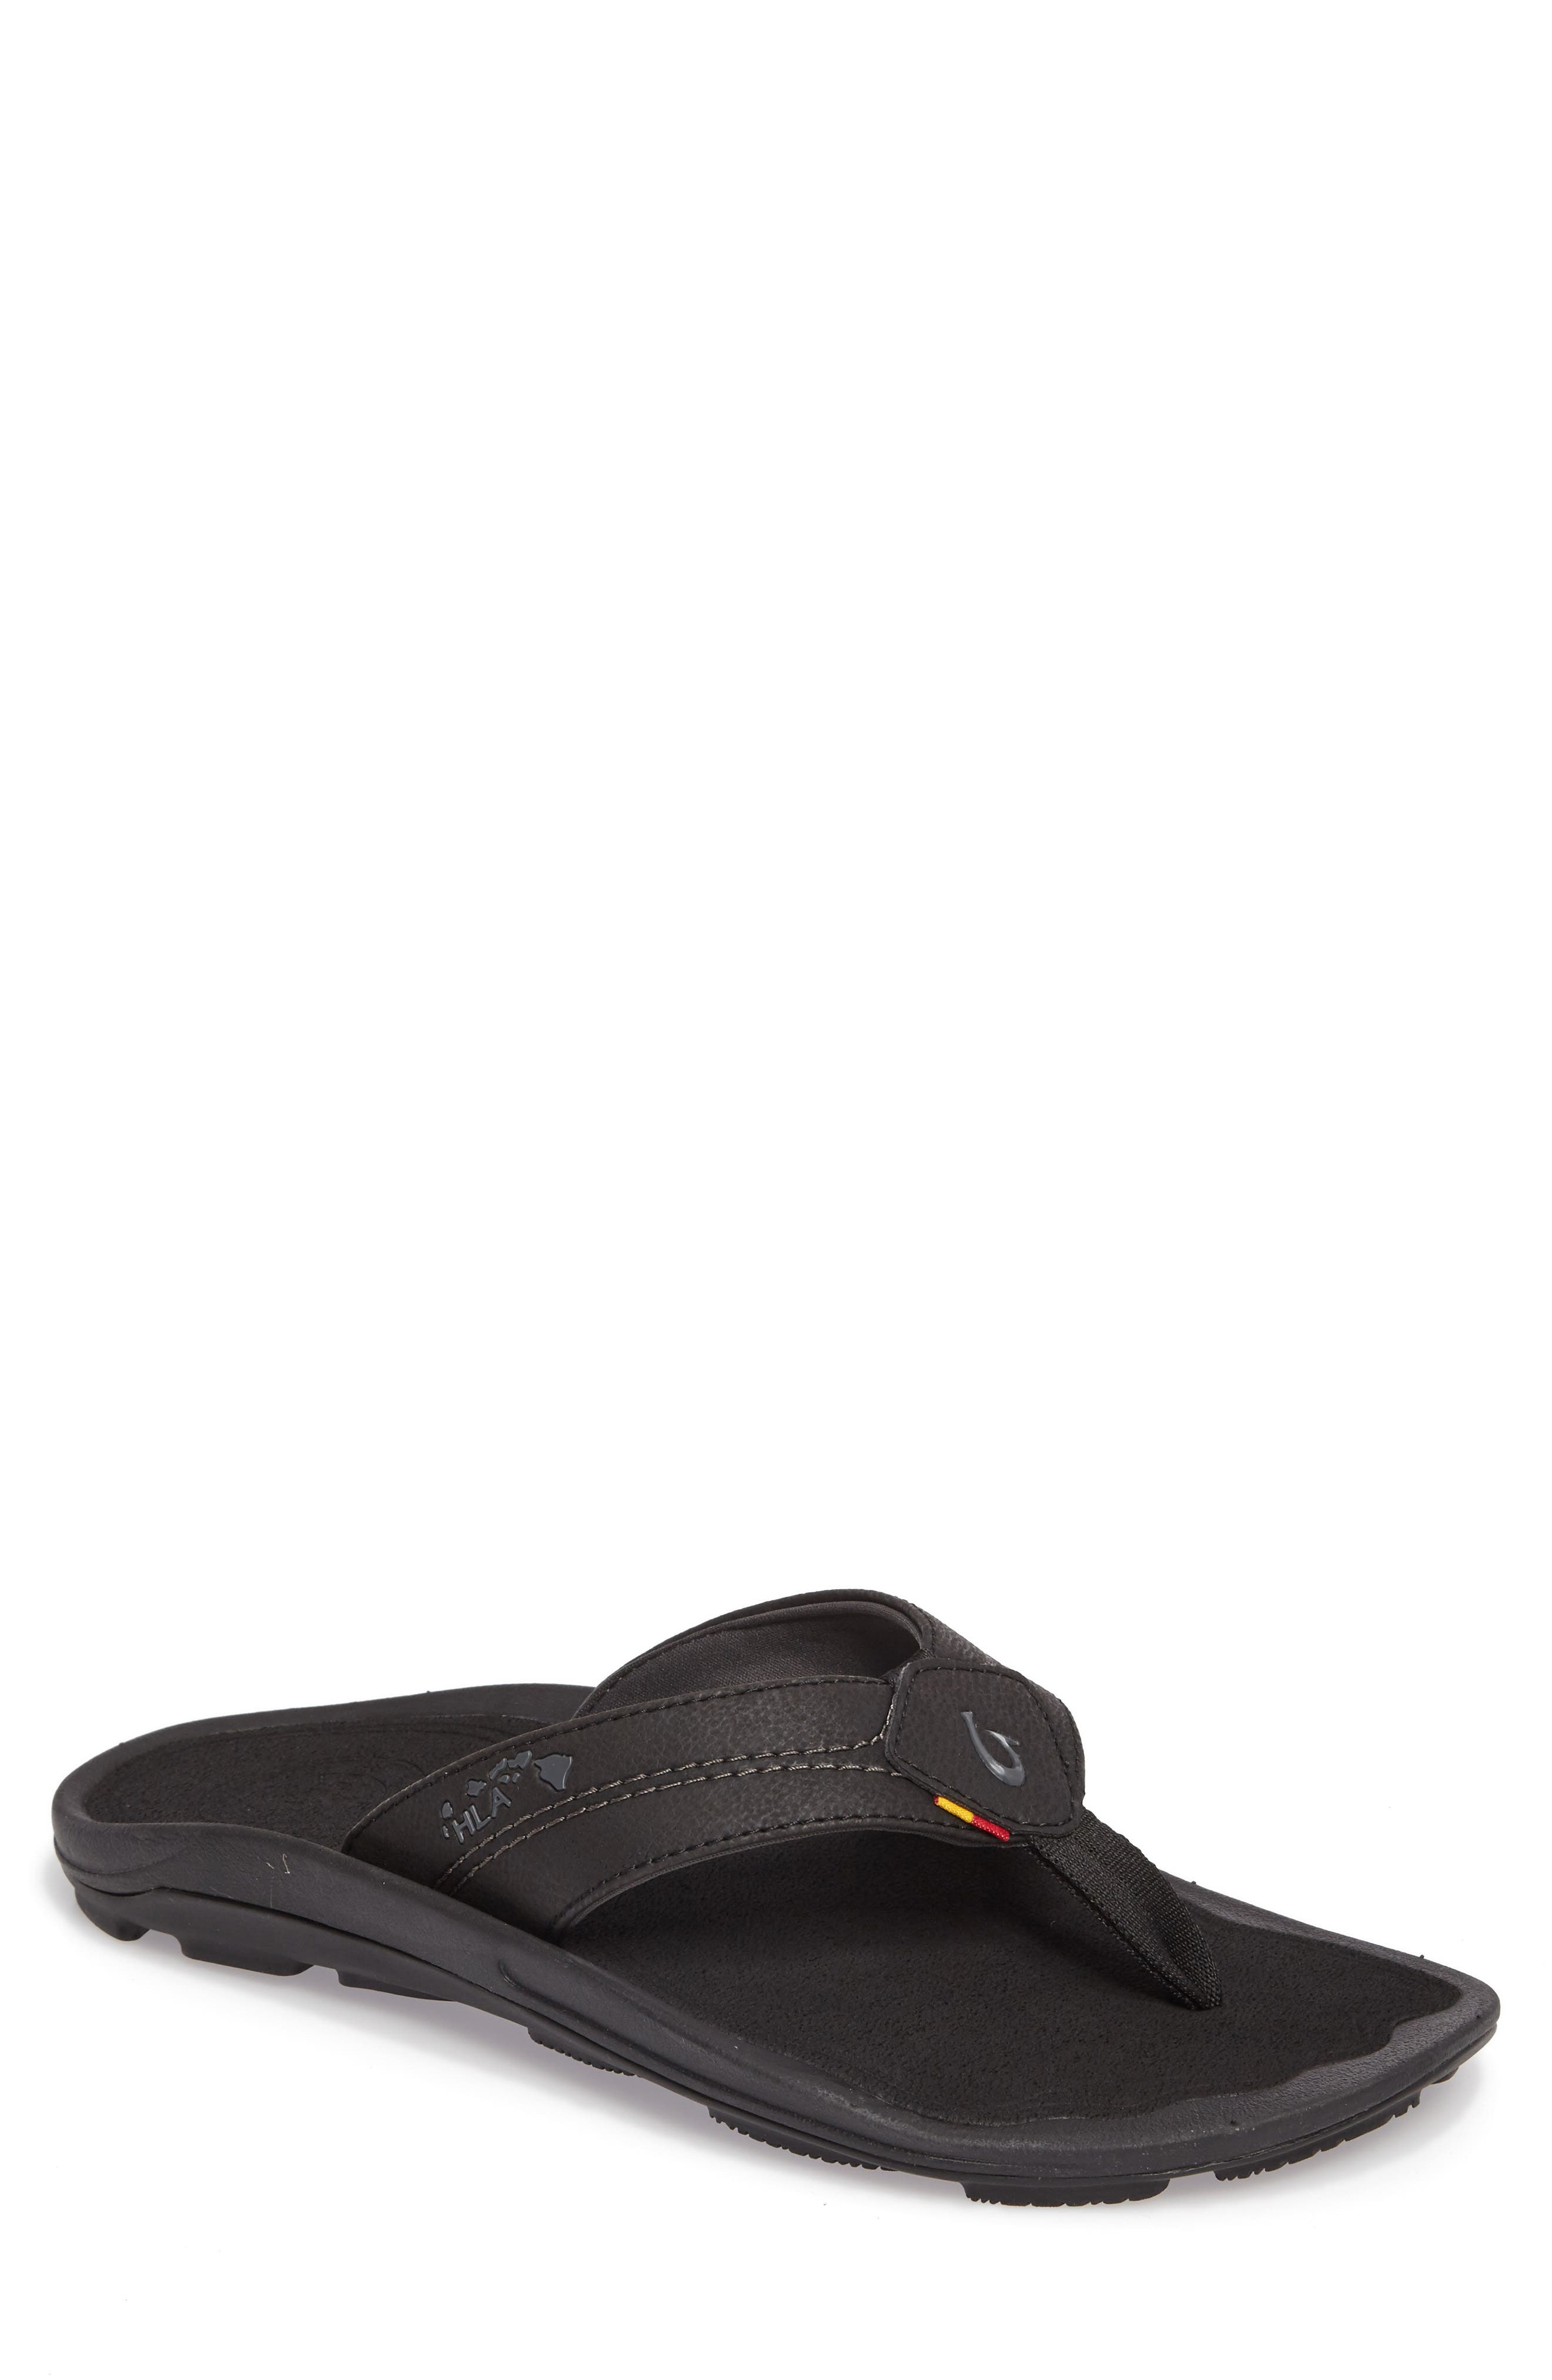 OLUKAI Kipi Flip Flop, Main, color, BLACK/ BLACK